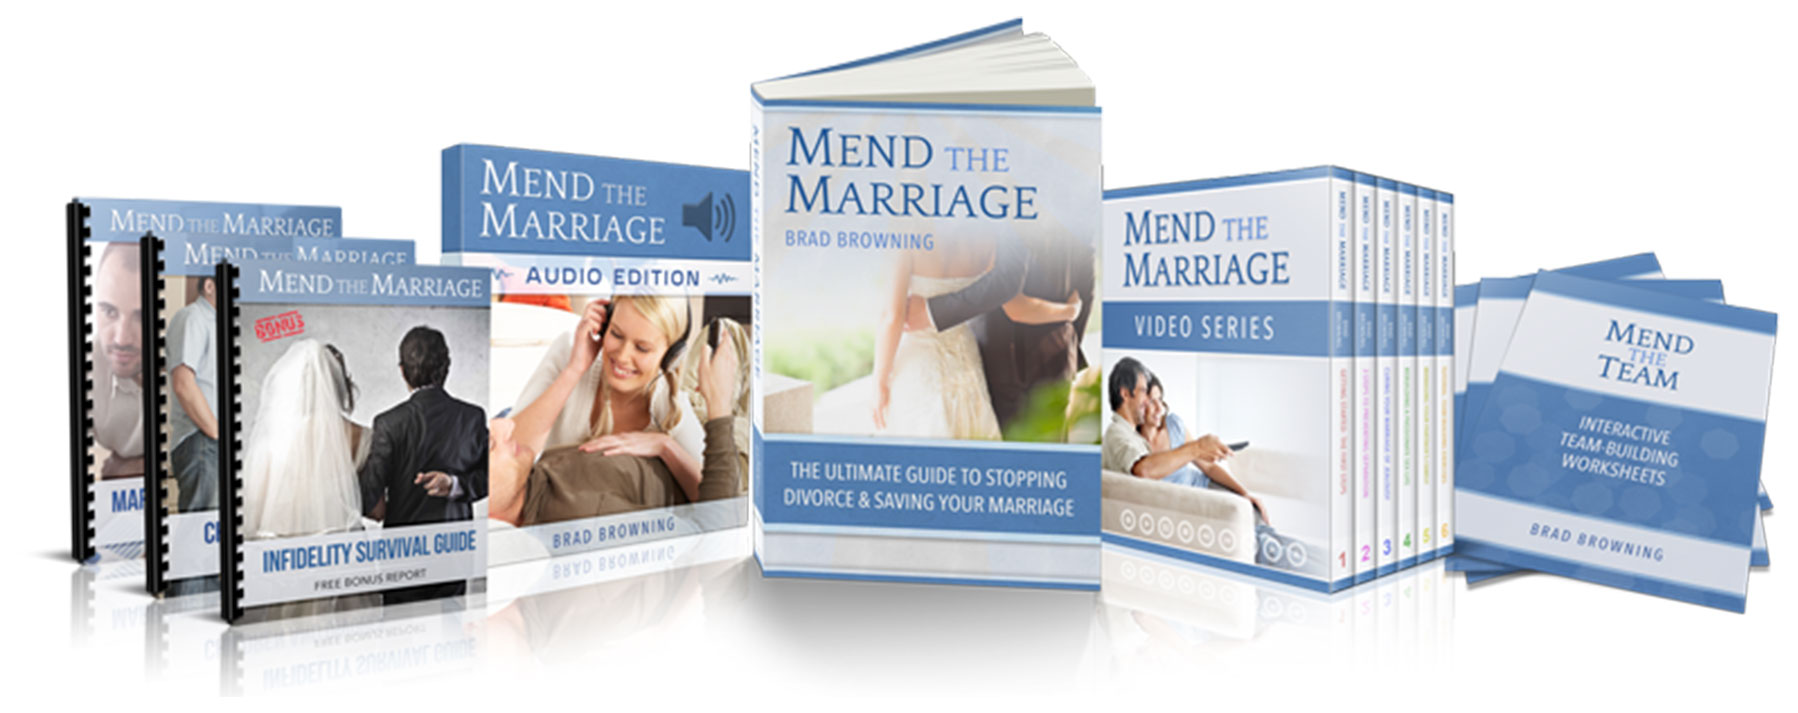 Mend-The-Marriage-review